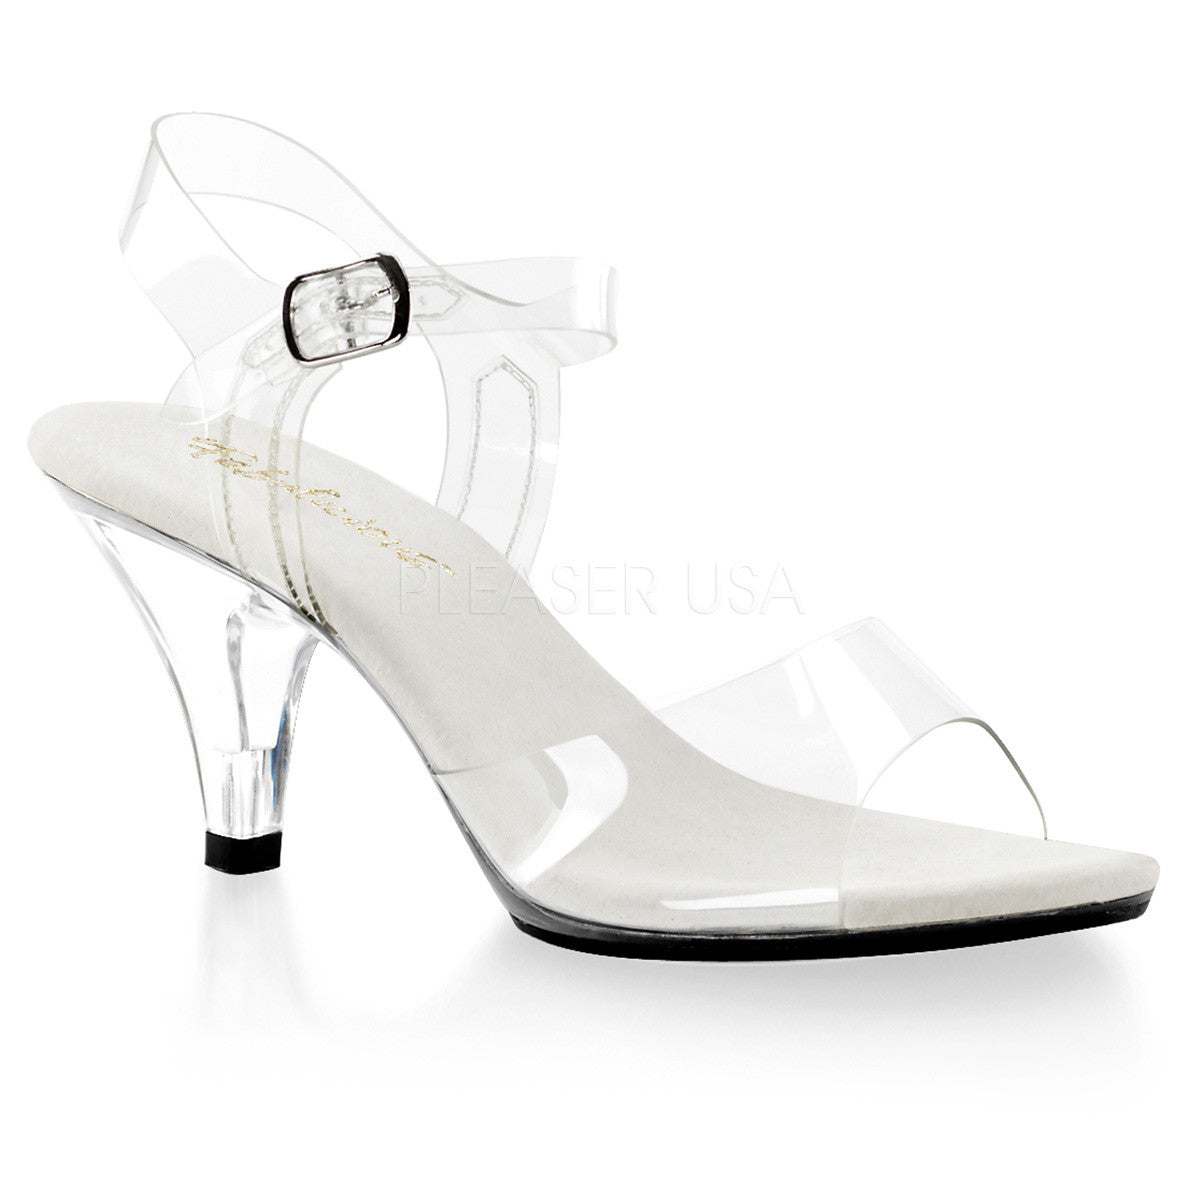 Fabulicious,Fabulicious BELLE-308 Clear Ankle Strap Sandals - Shoecup.com